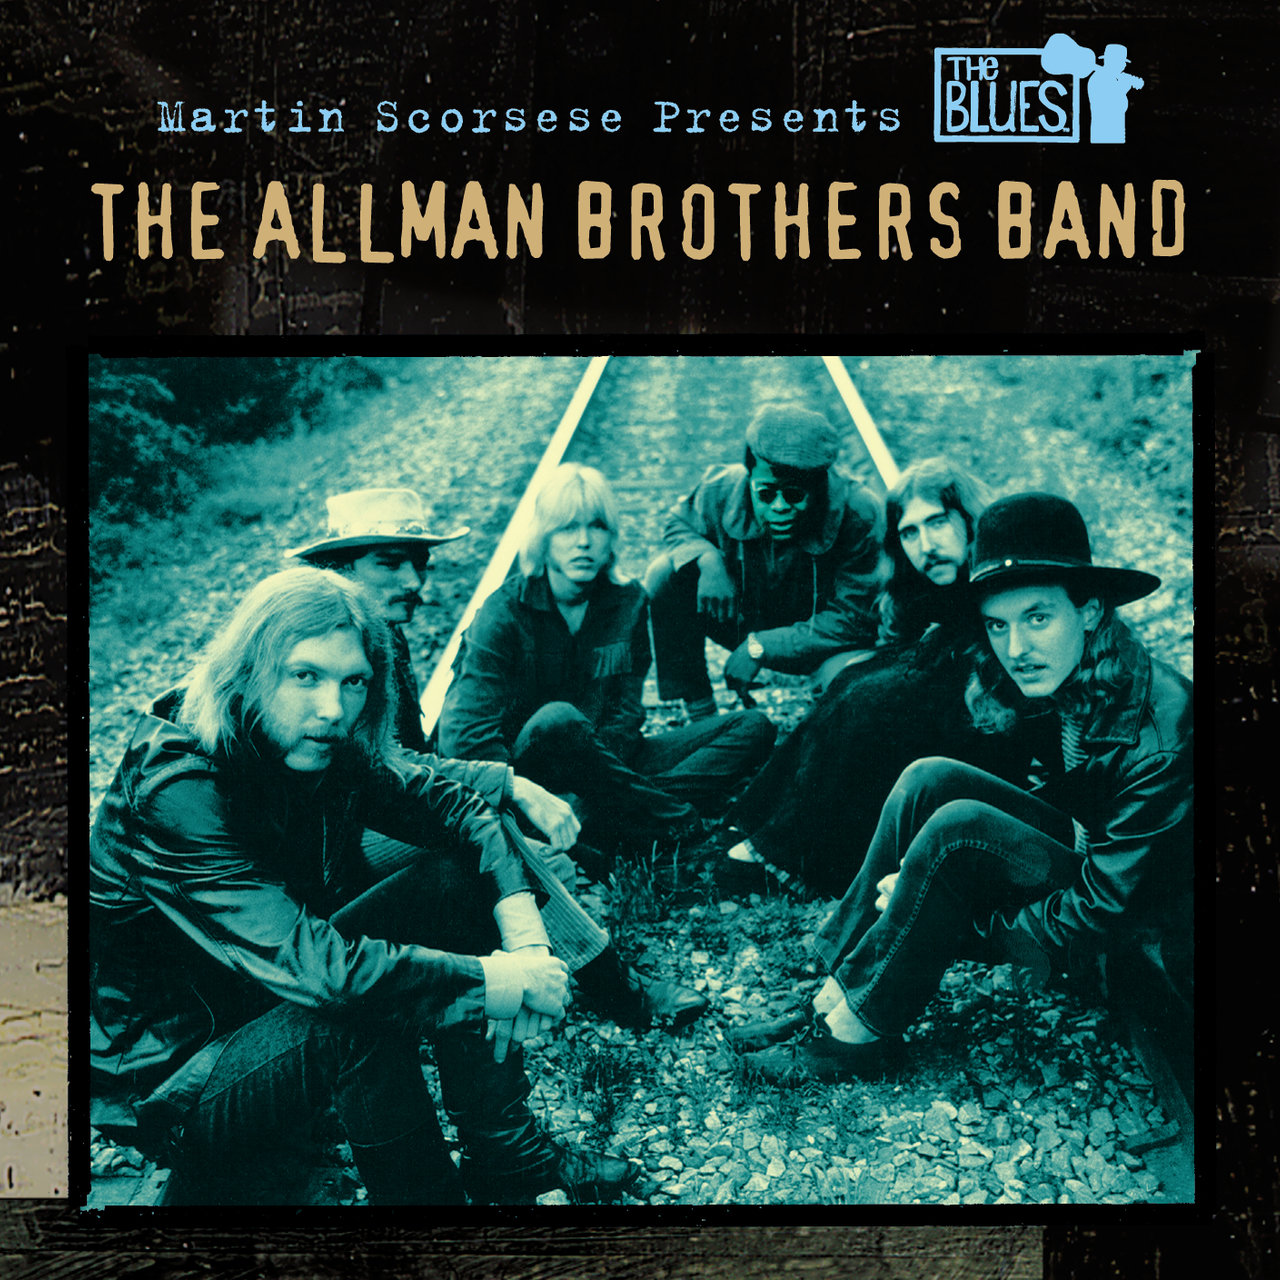 Martin Scorsese Presents The Blues: The Allman Brothers Band / The ...